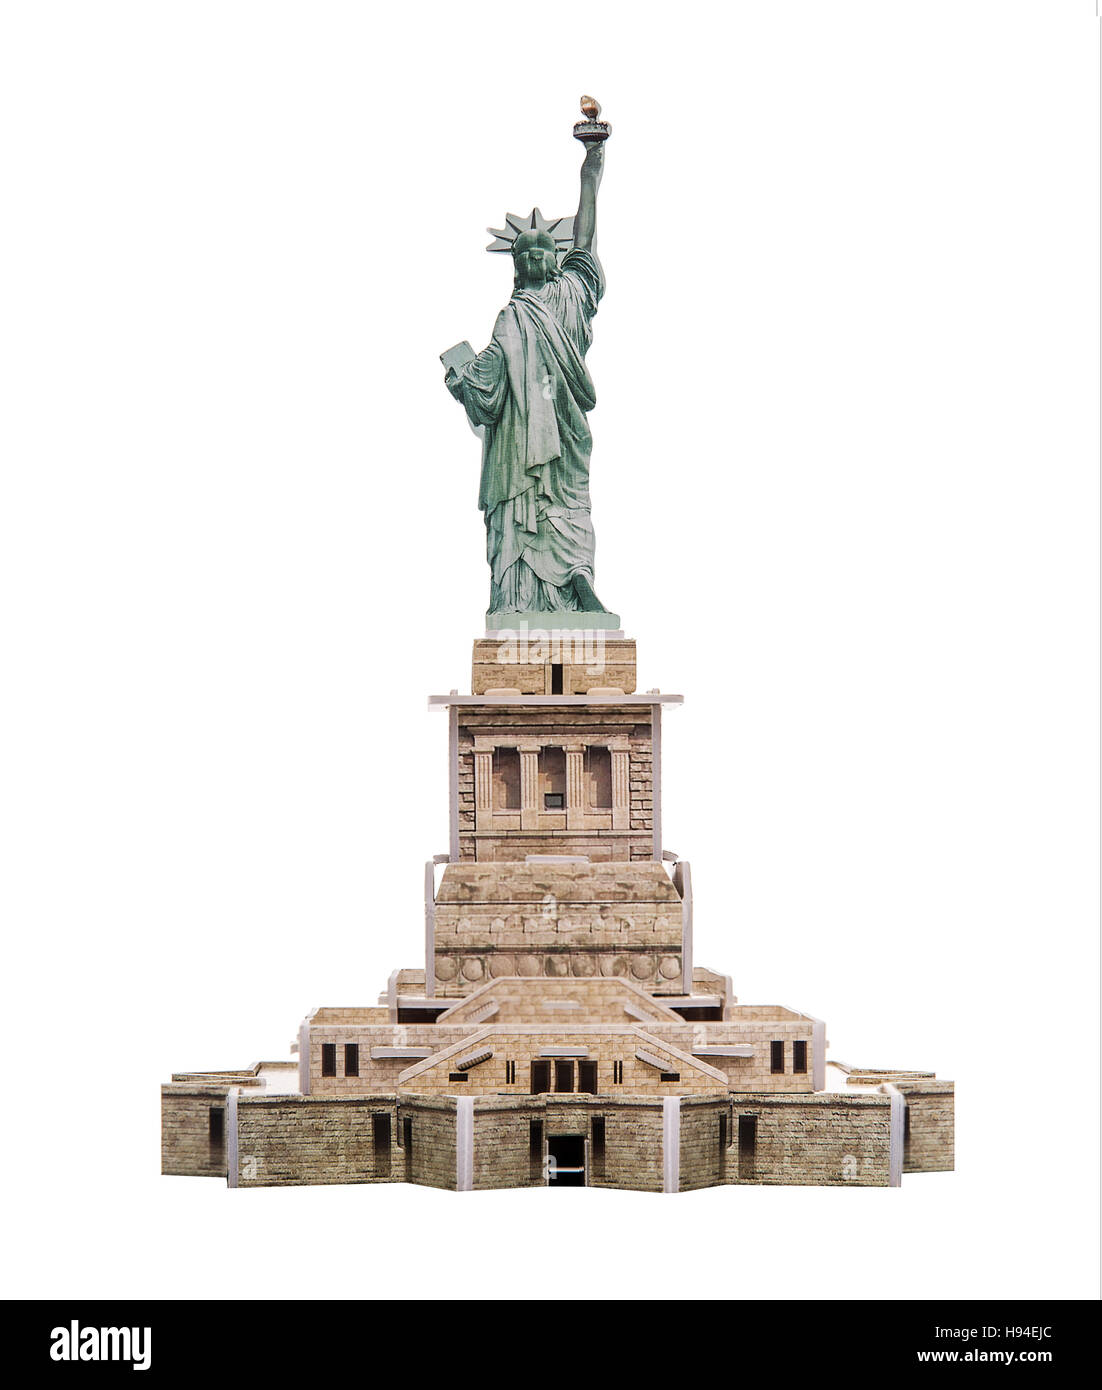 Statue of Liberty paper model on white background. - Stock Image